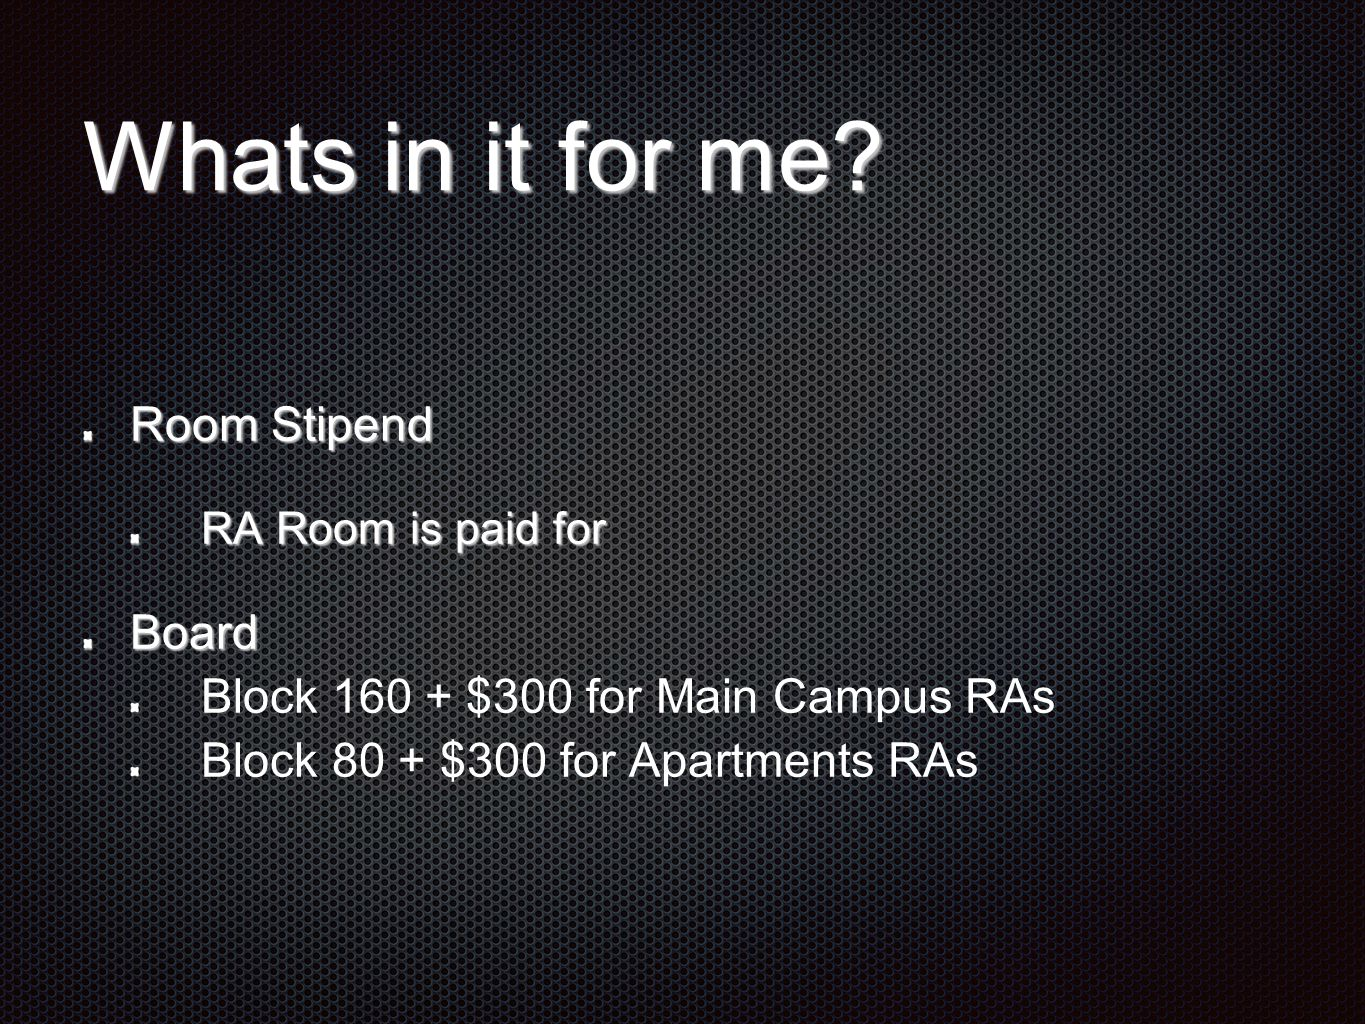 Whats in it for me? Room Stipend RA Room is paid for Board Block 160 + $300 for Main Campus RAs Block 80 + $300 for Apartments RAs